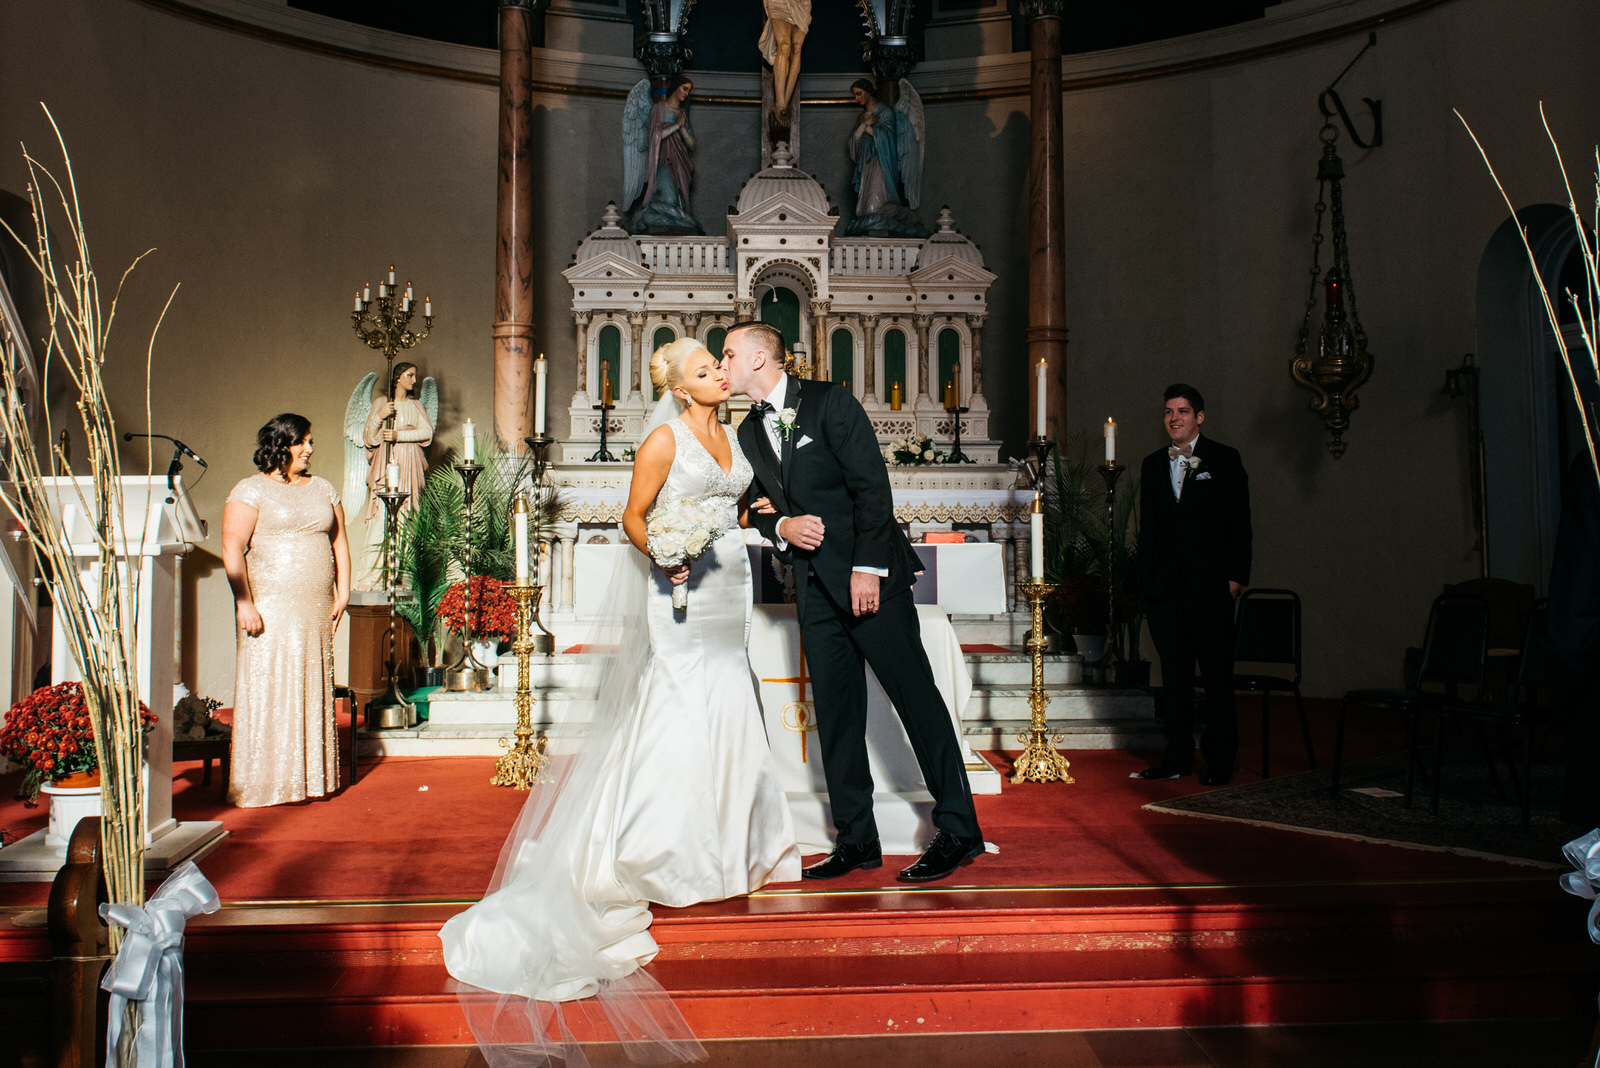 hilton_garden_inn_southpointe_pittsburgh_weddings_46.jpg